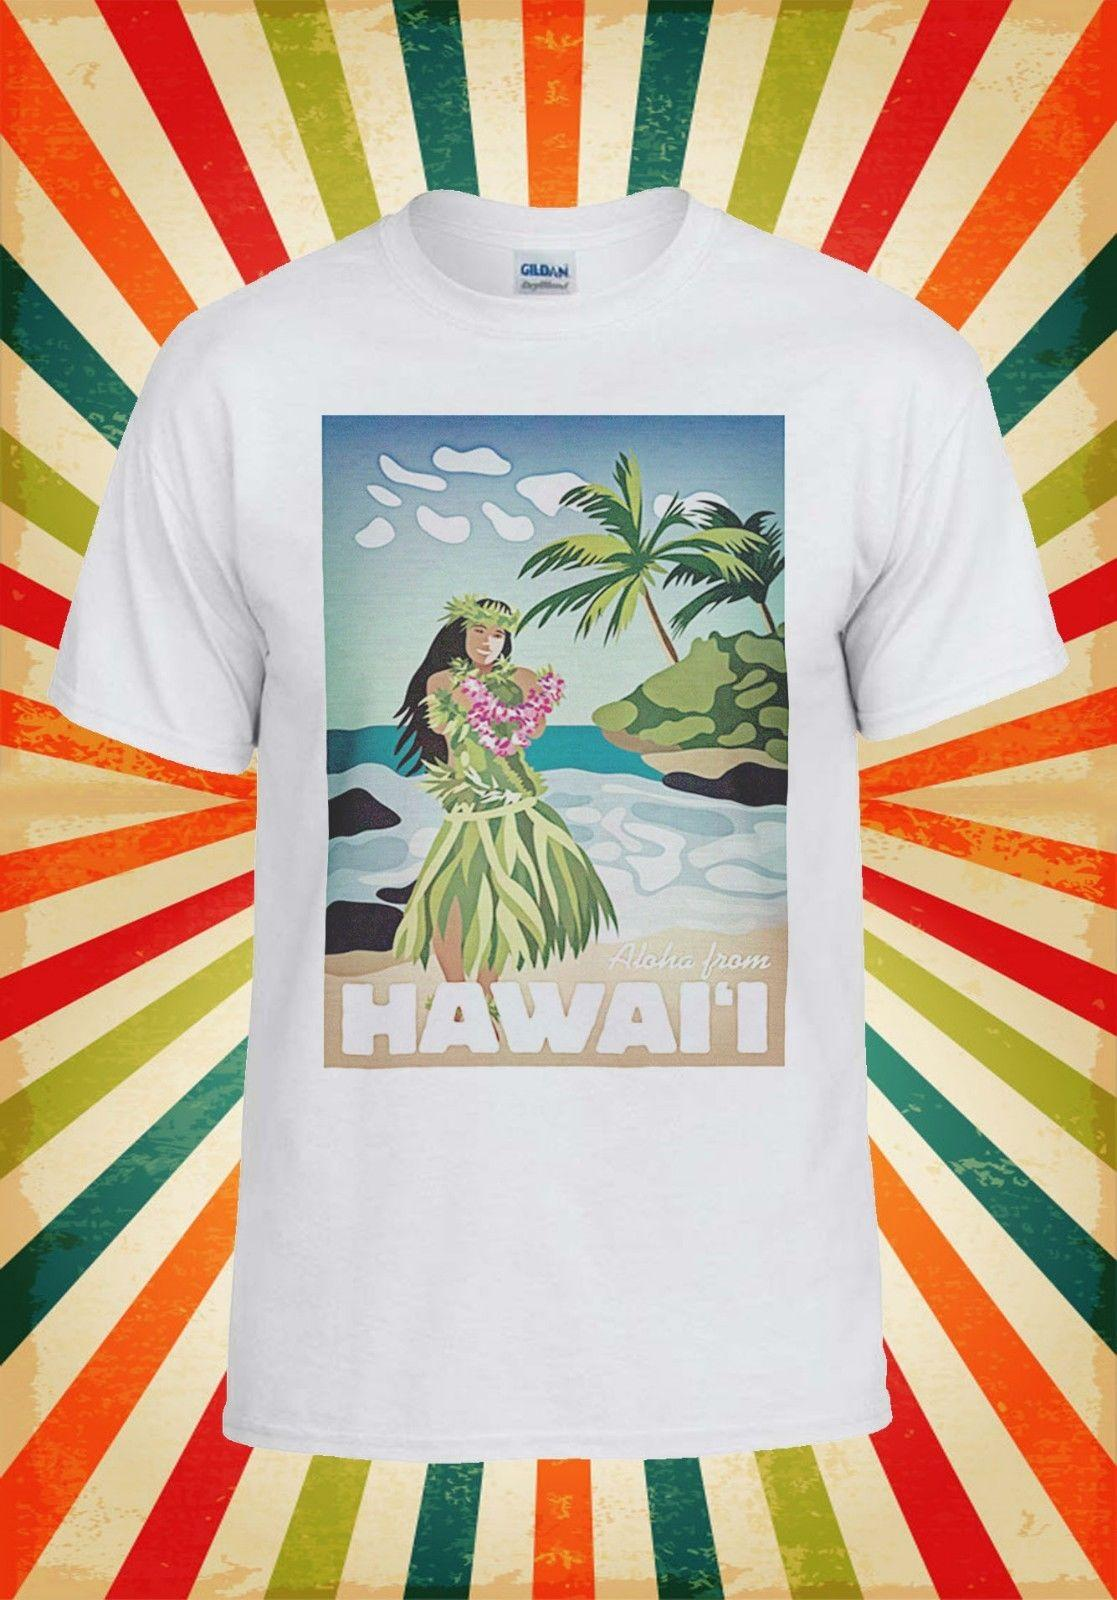 Hawaii Hula Girl Aloha Cool Funny Men Women Vest Tank Top Unisex T Shirt  430 Online with  13.54 Piece on Cheaptshirts48 s Store  a2de89992